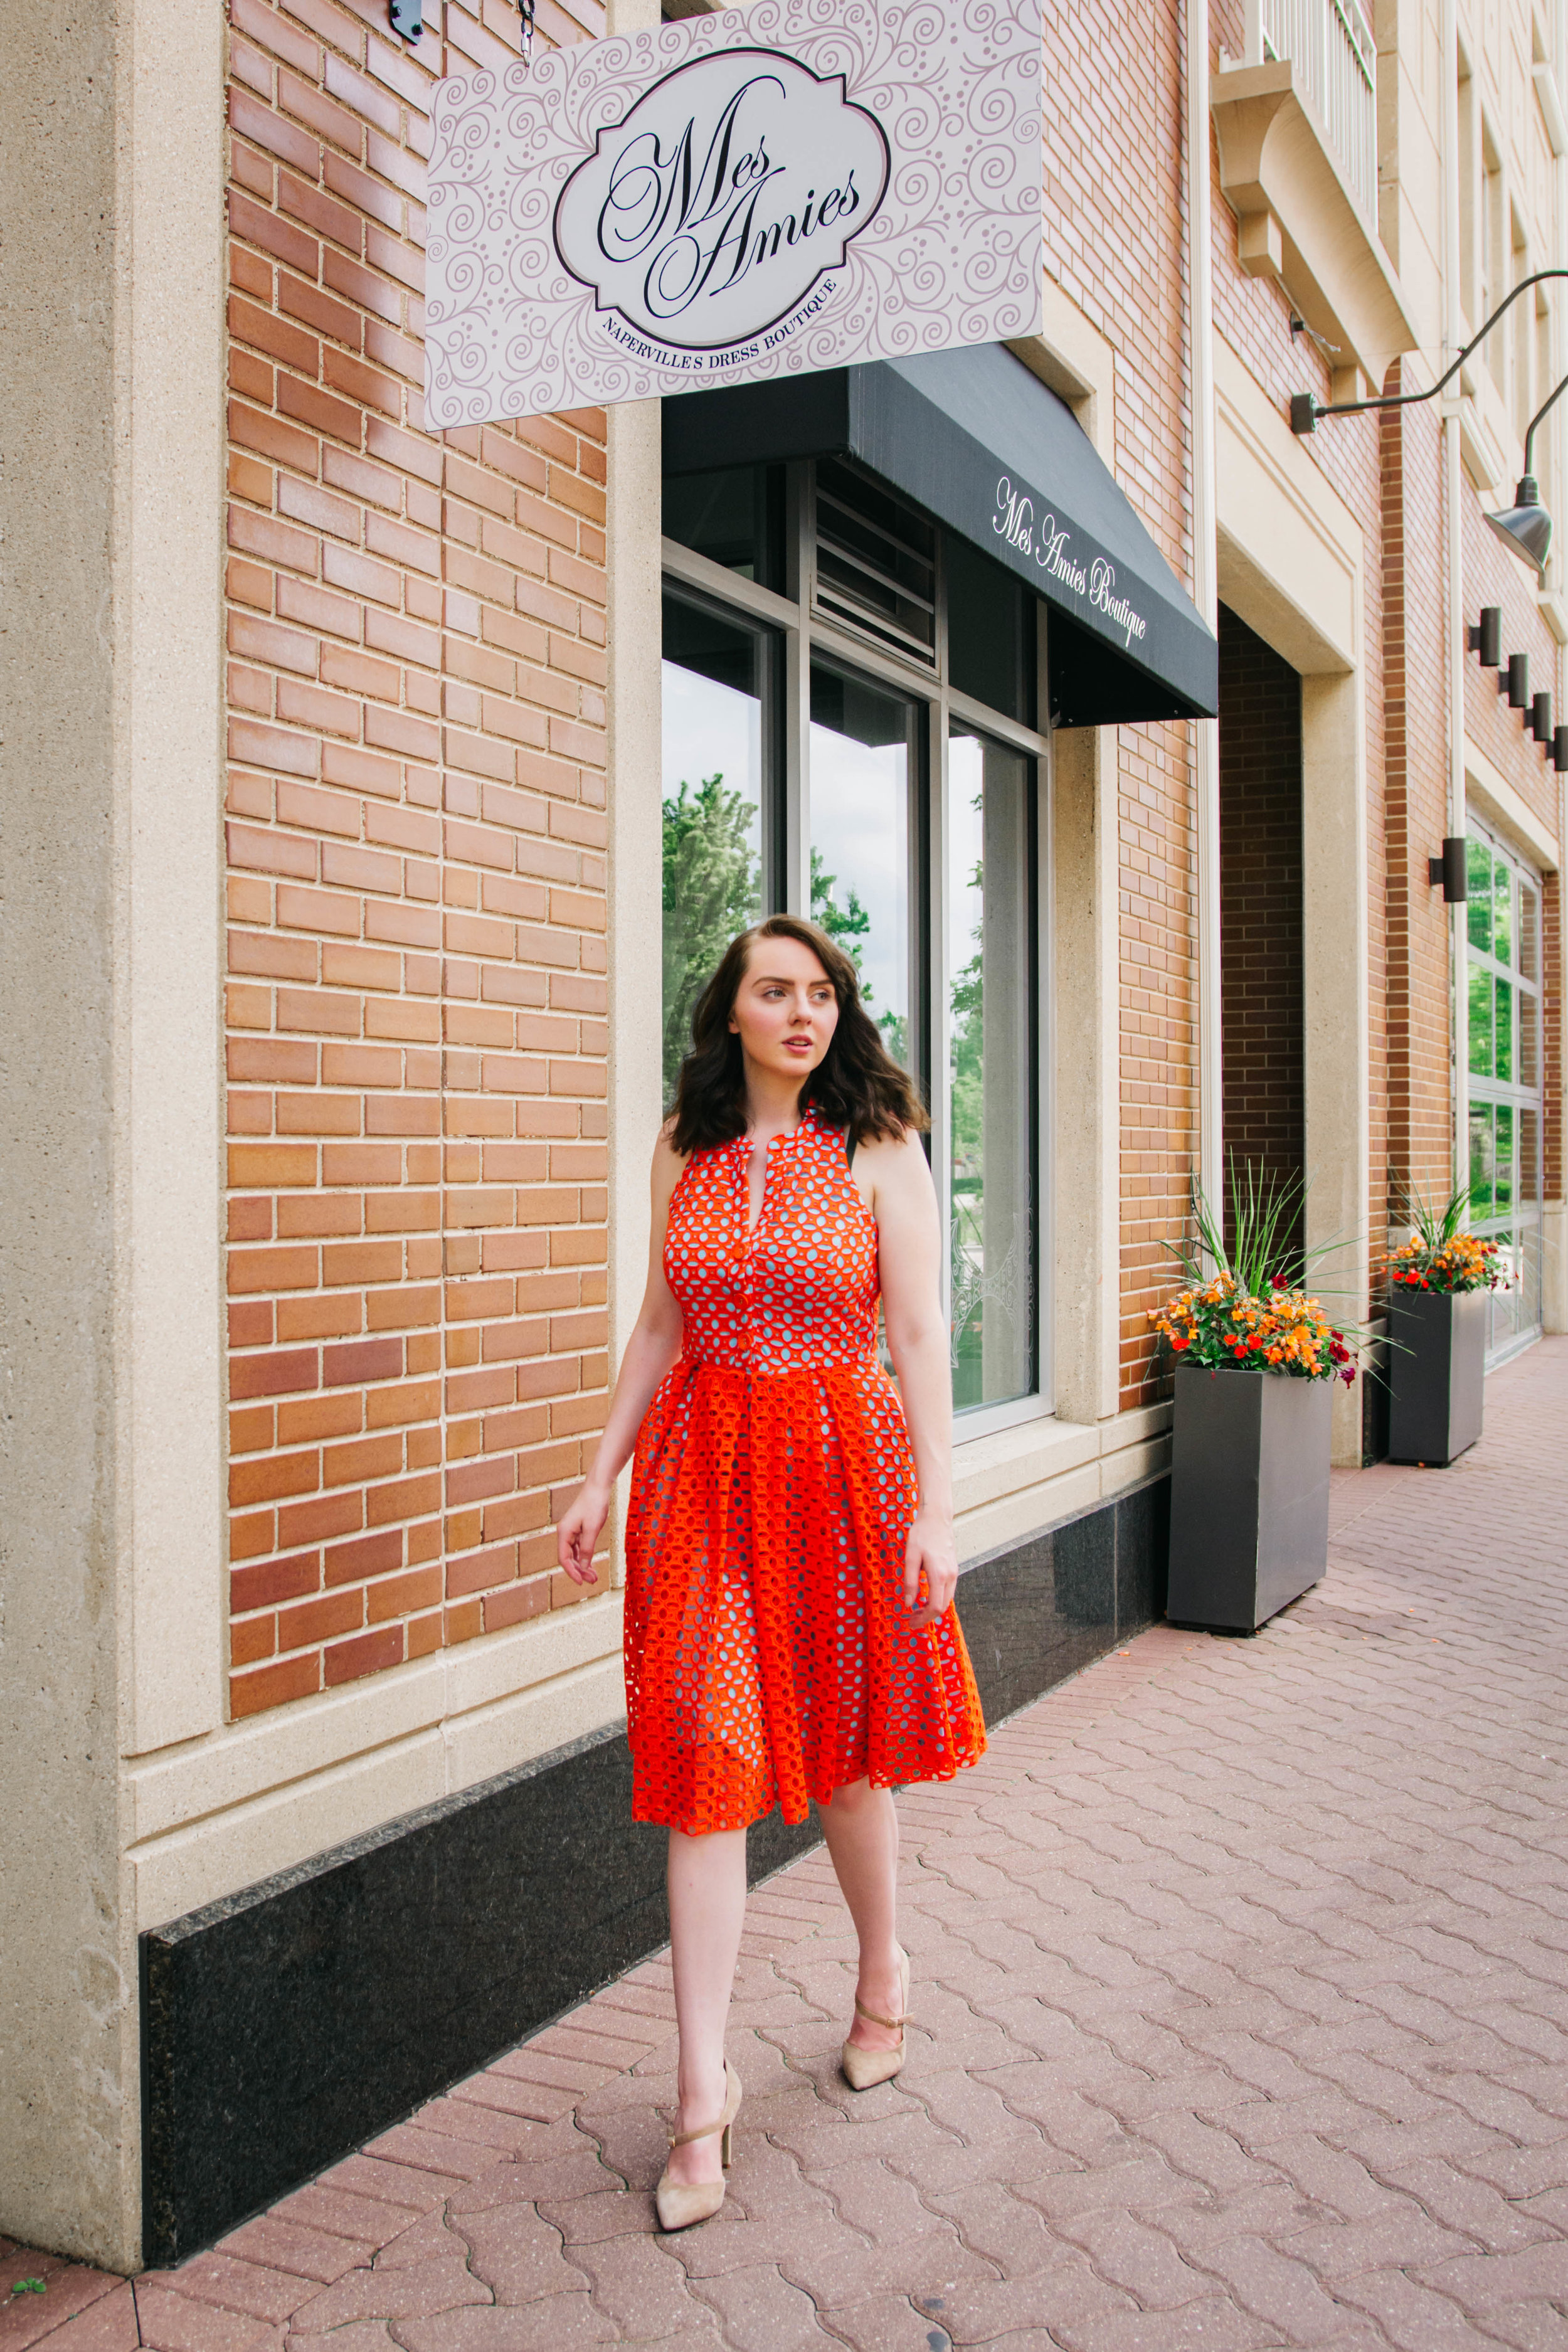 Water Street Welcomes Mes Amies Boutique